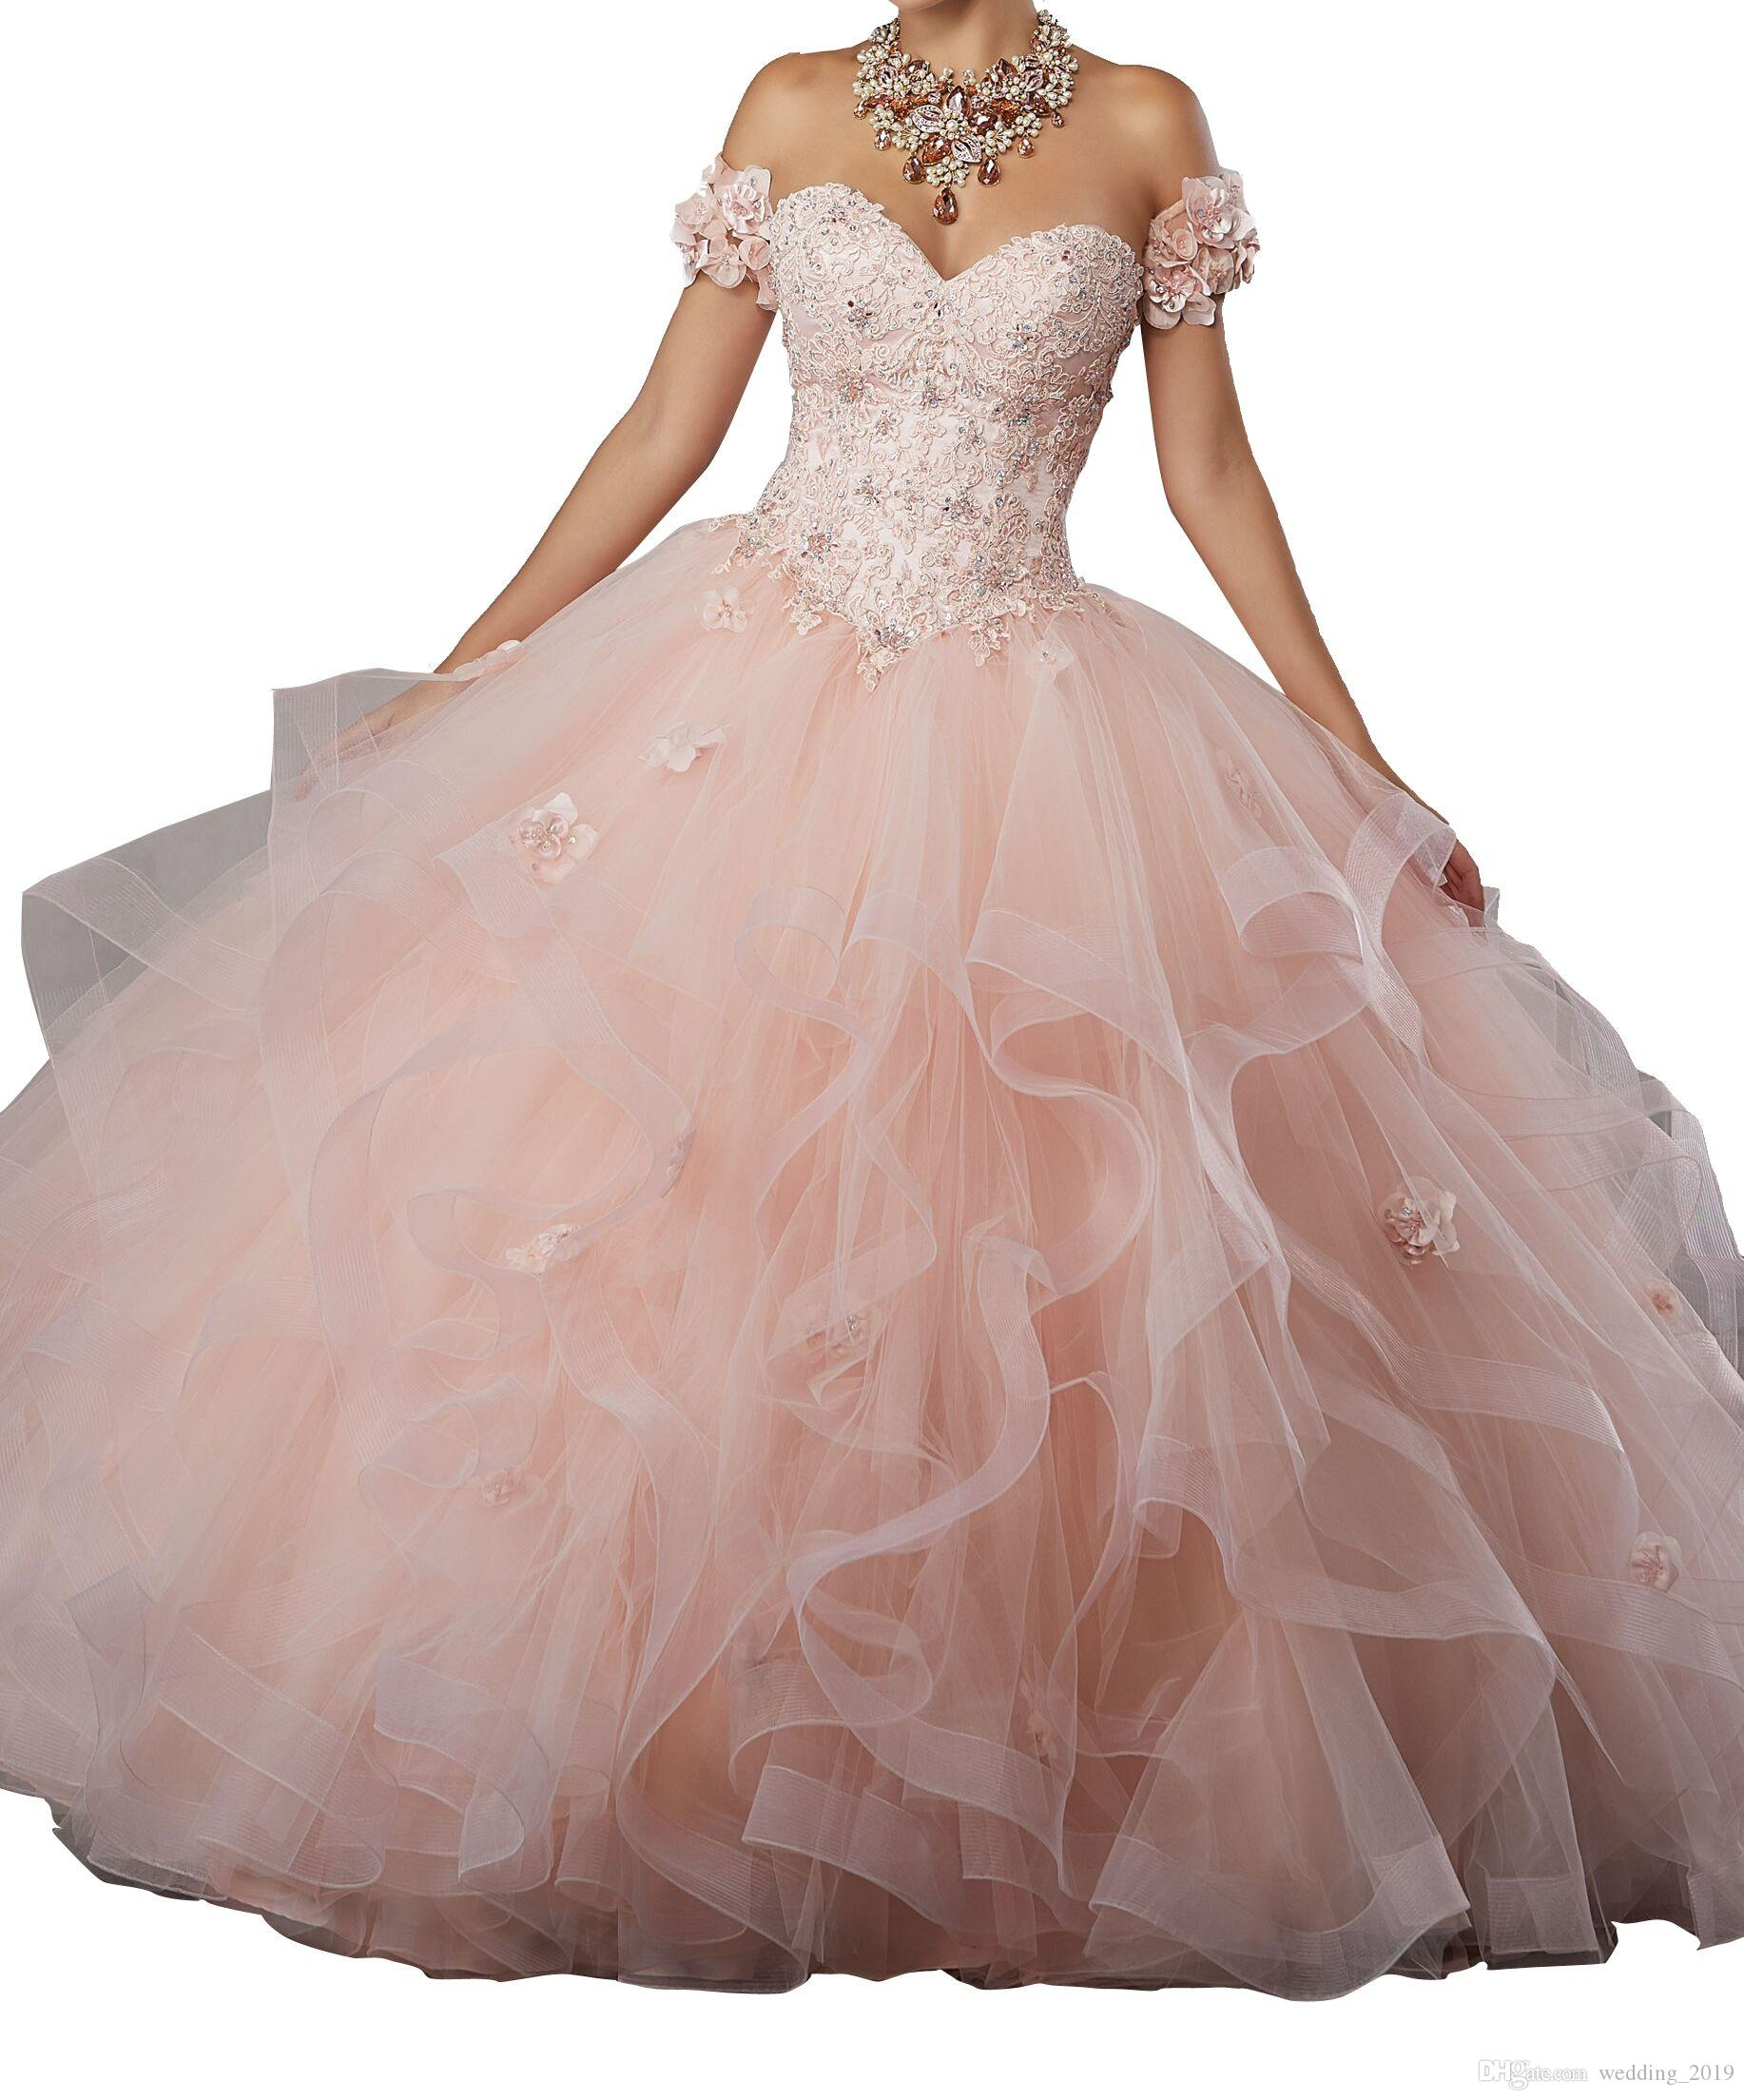 Quinceanera Dresses Heart shaped collar shoulders lace flower skirt multi layer net matted skirt tail pink pink tail dress custom mailing